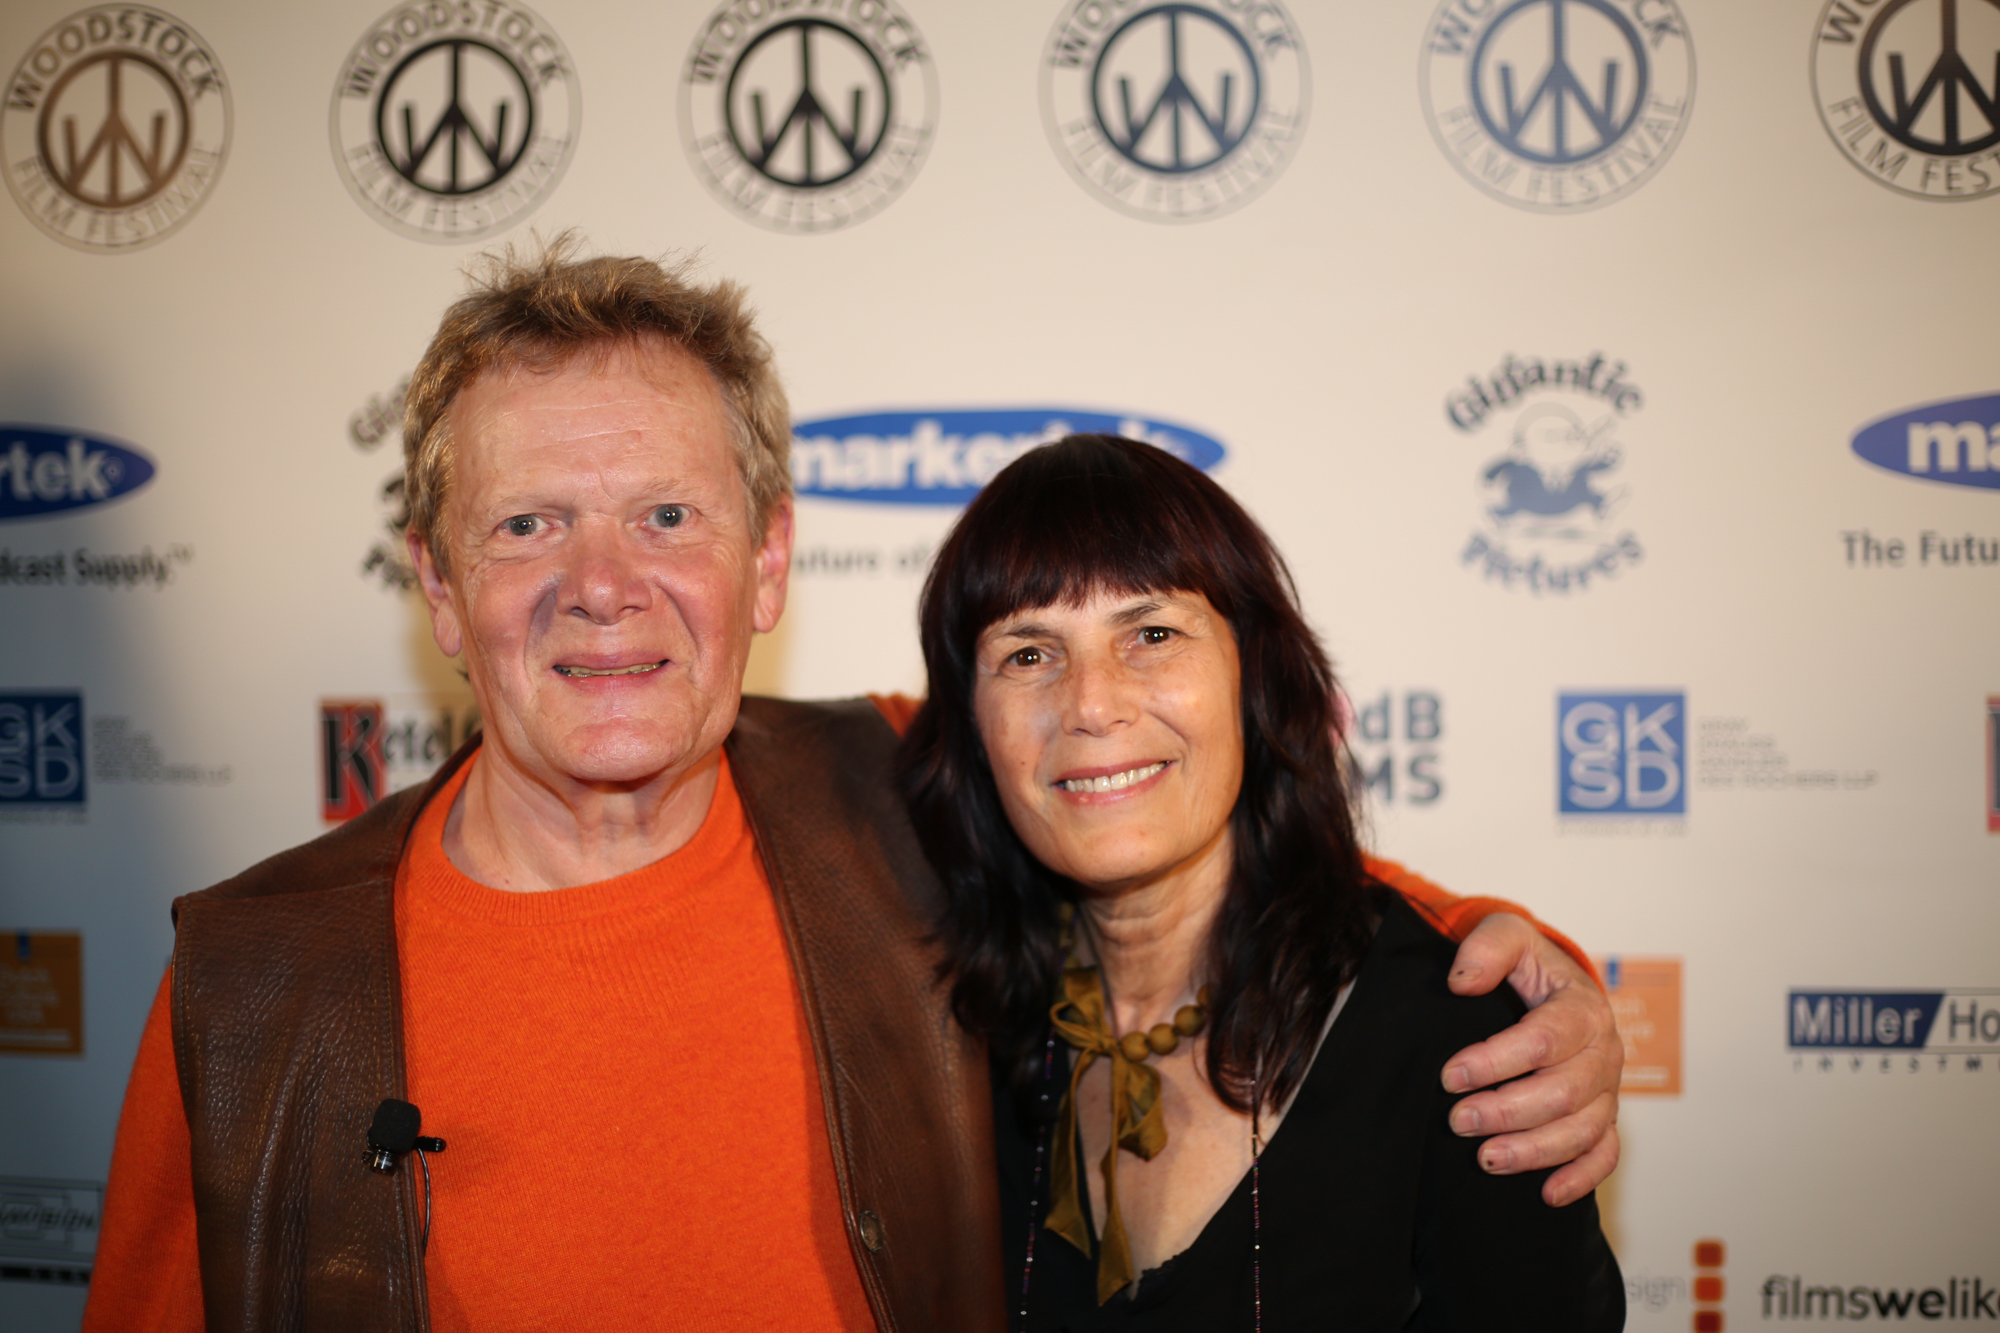 Philippe Petit and Meira Blaustein